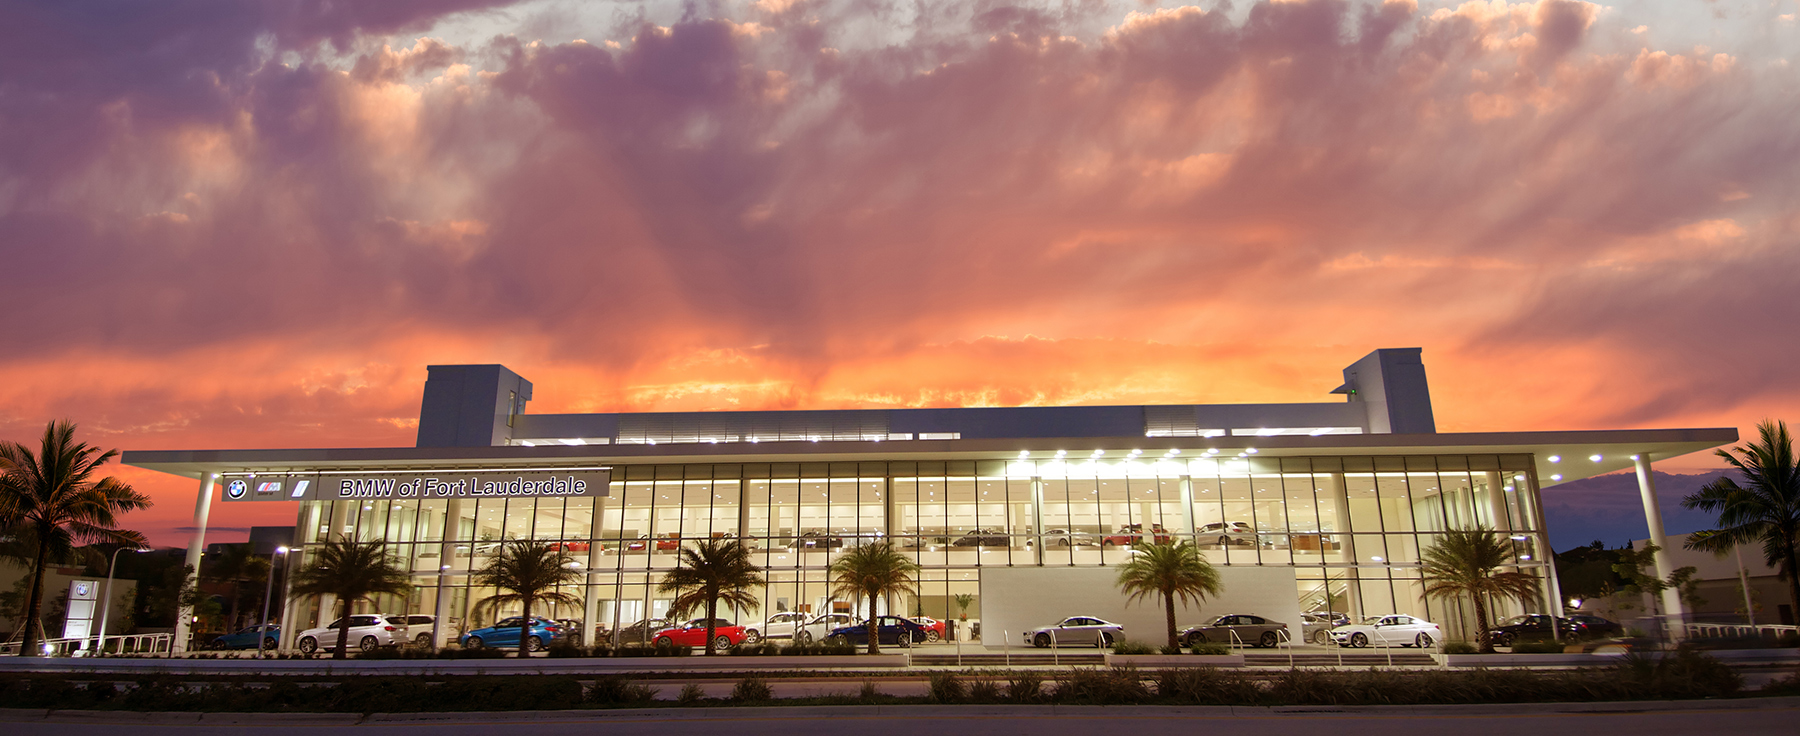 BMW Fort Lauderdale >> BMW of Fort Lauderdale - Tricarico Architecture and Design